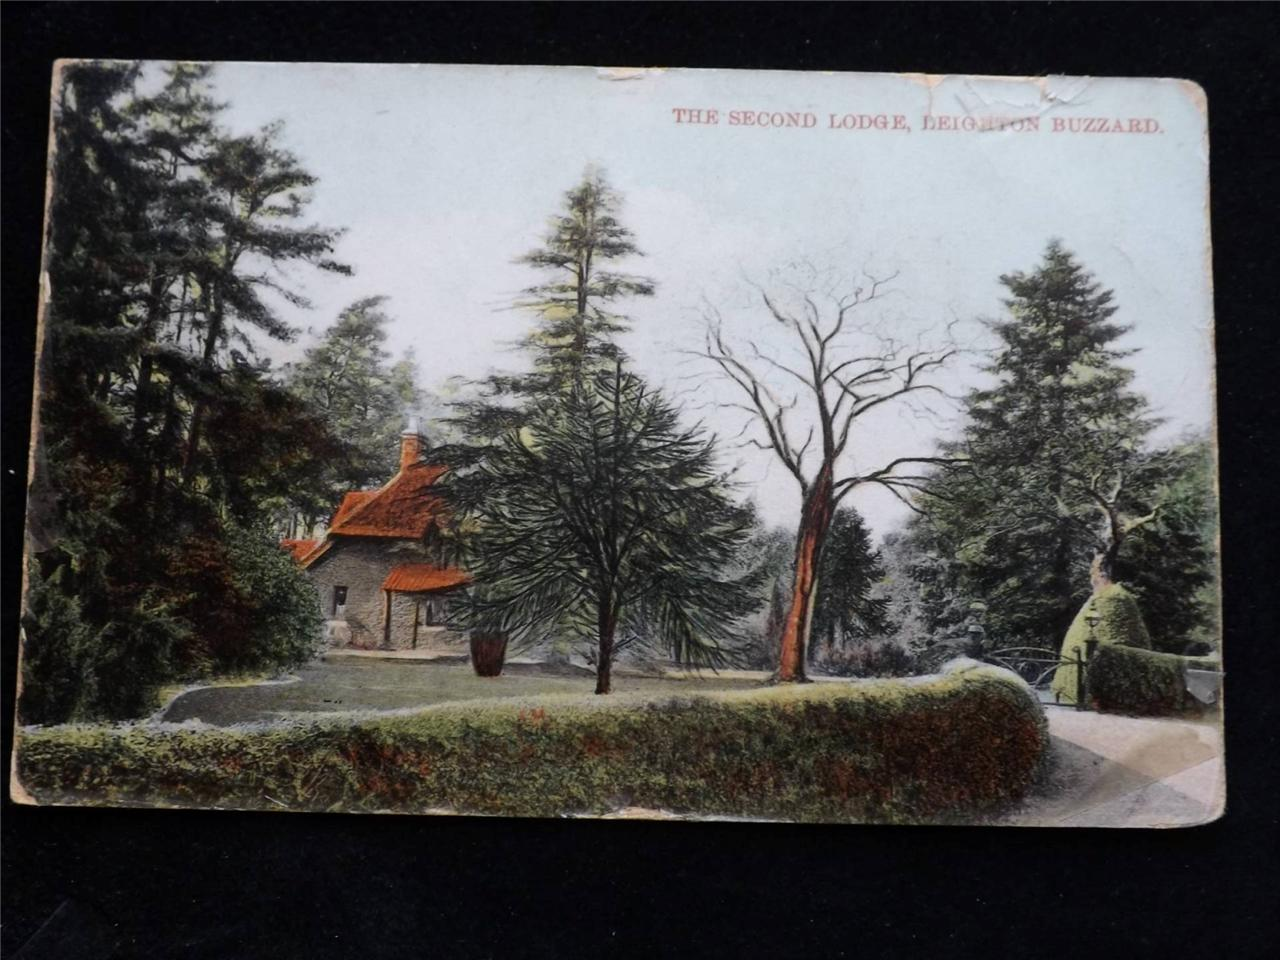 OLD-POSTCARD-OF-THE-SECOND-LODGE-LEIGHTON-BUZZARD-USED-1919